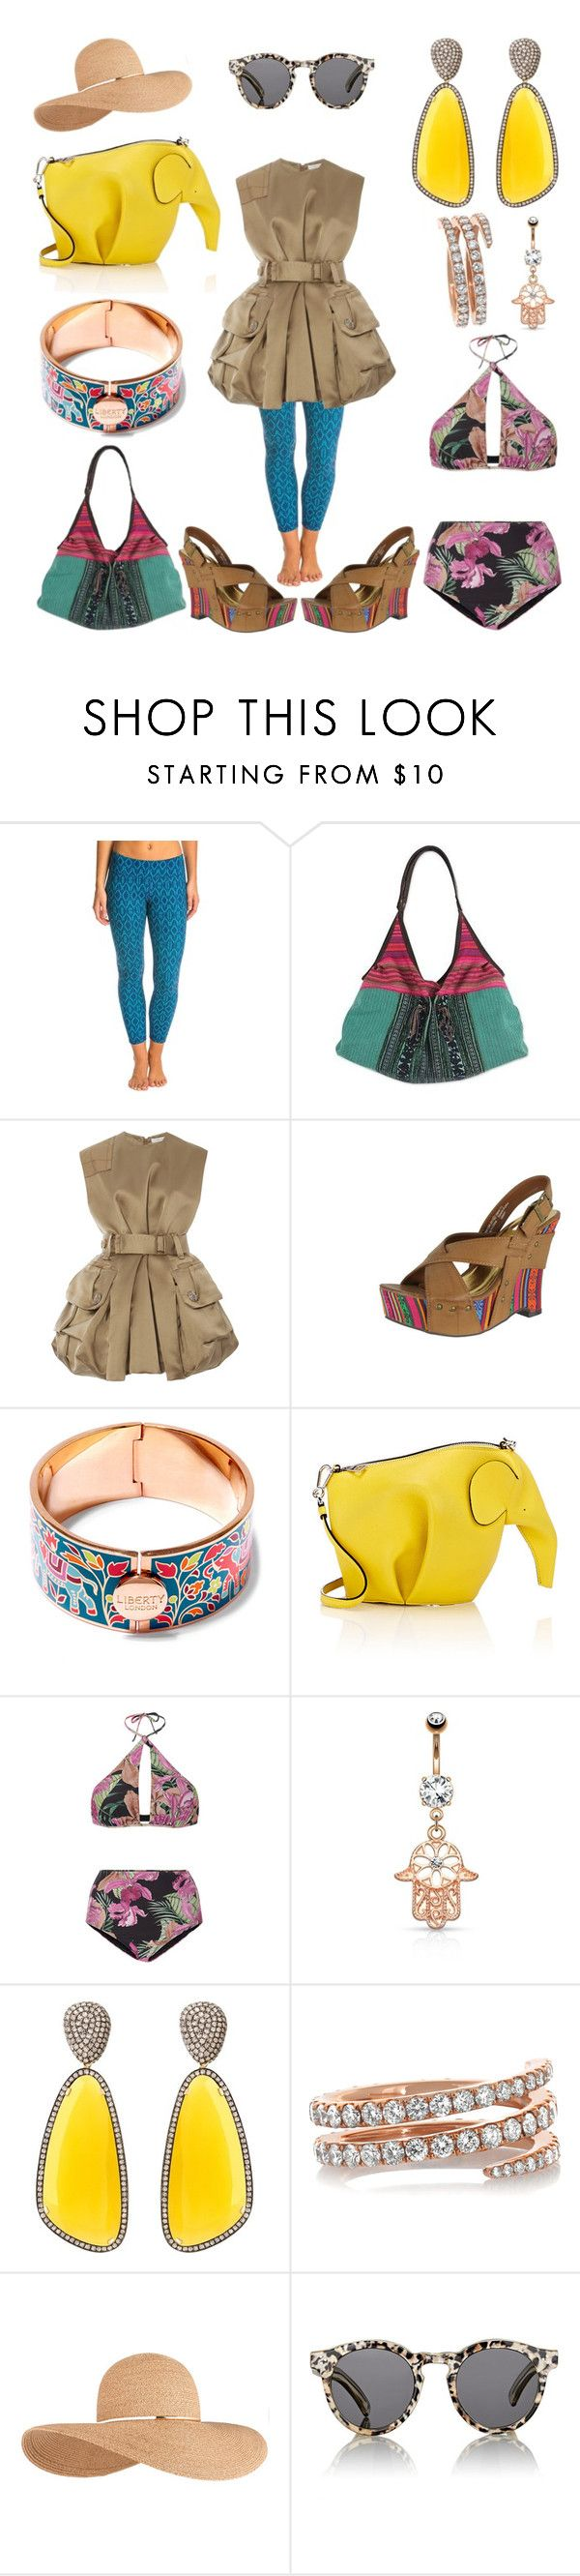 """""""Lampang, Thailand"""" by creation-gallery ❤ liked on Polyvore featuring prAna, NOVICA, Marc Jacobs, Not Rated, Liberty, Loewe, ADRIANA DEGREAS, Christina Debs, Anita Ko and Eugenia Kim"""